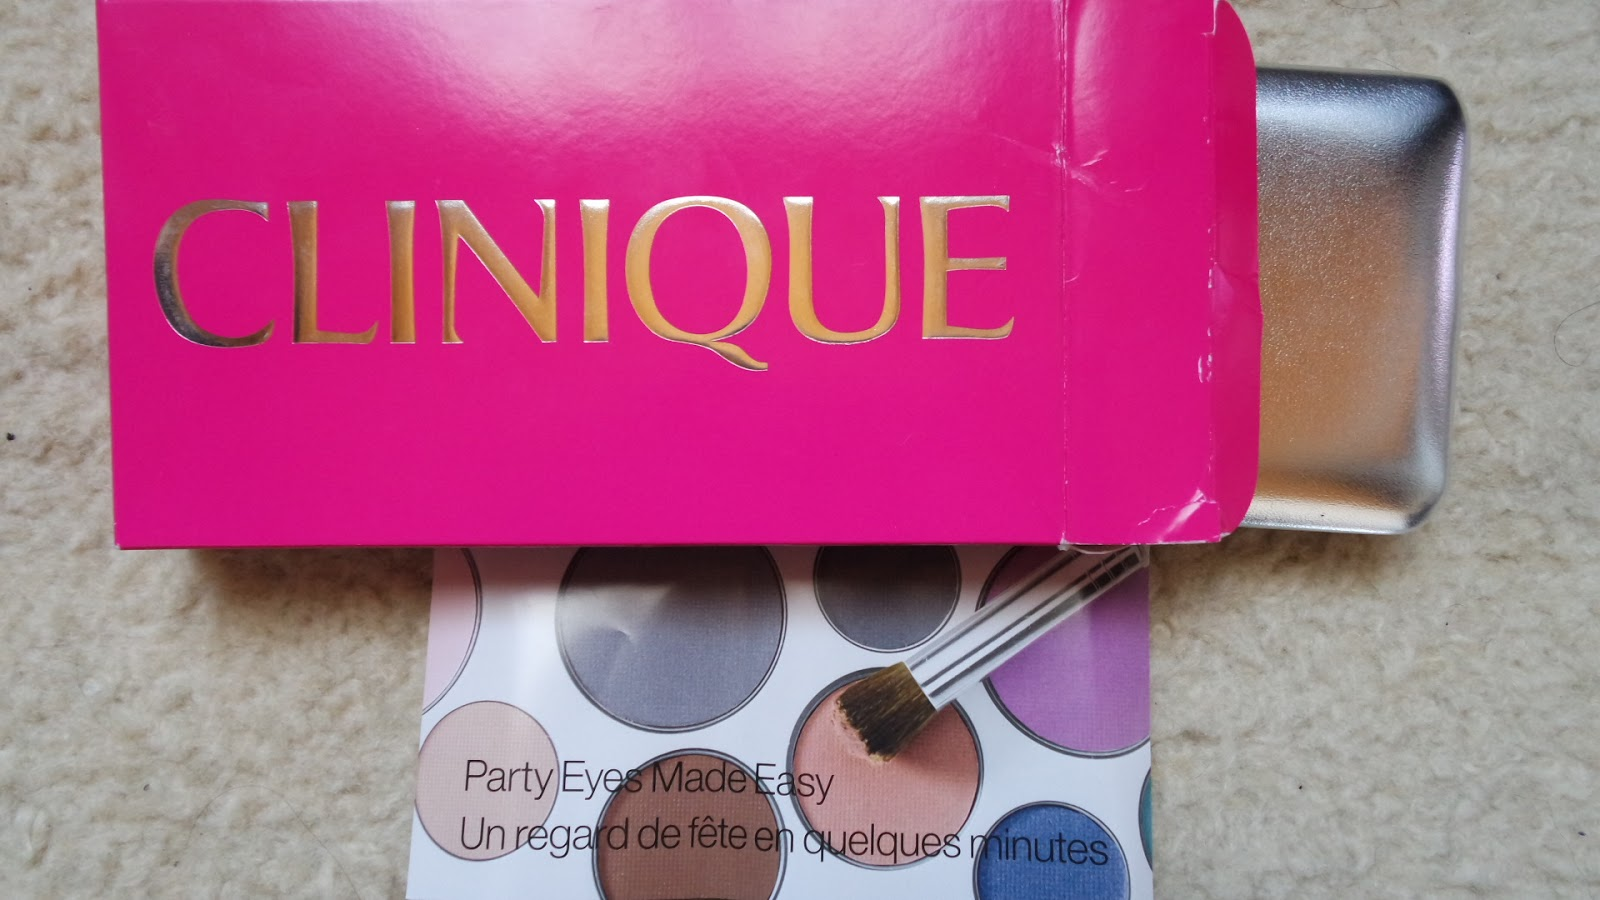 The cutest berry clinique party eyes made easy far for Where is clinique made